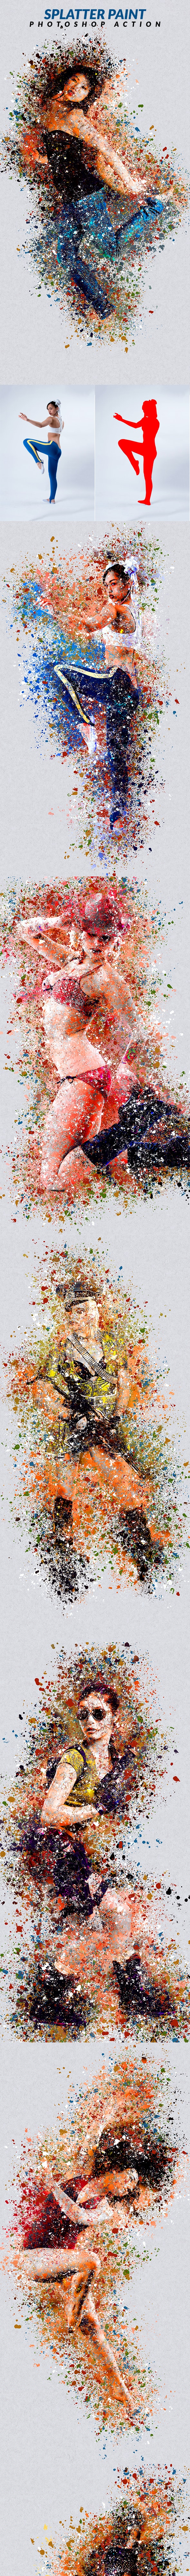 Splatter Paint Photoshop Action - Photo Effects Actions